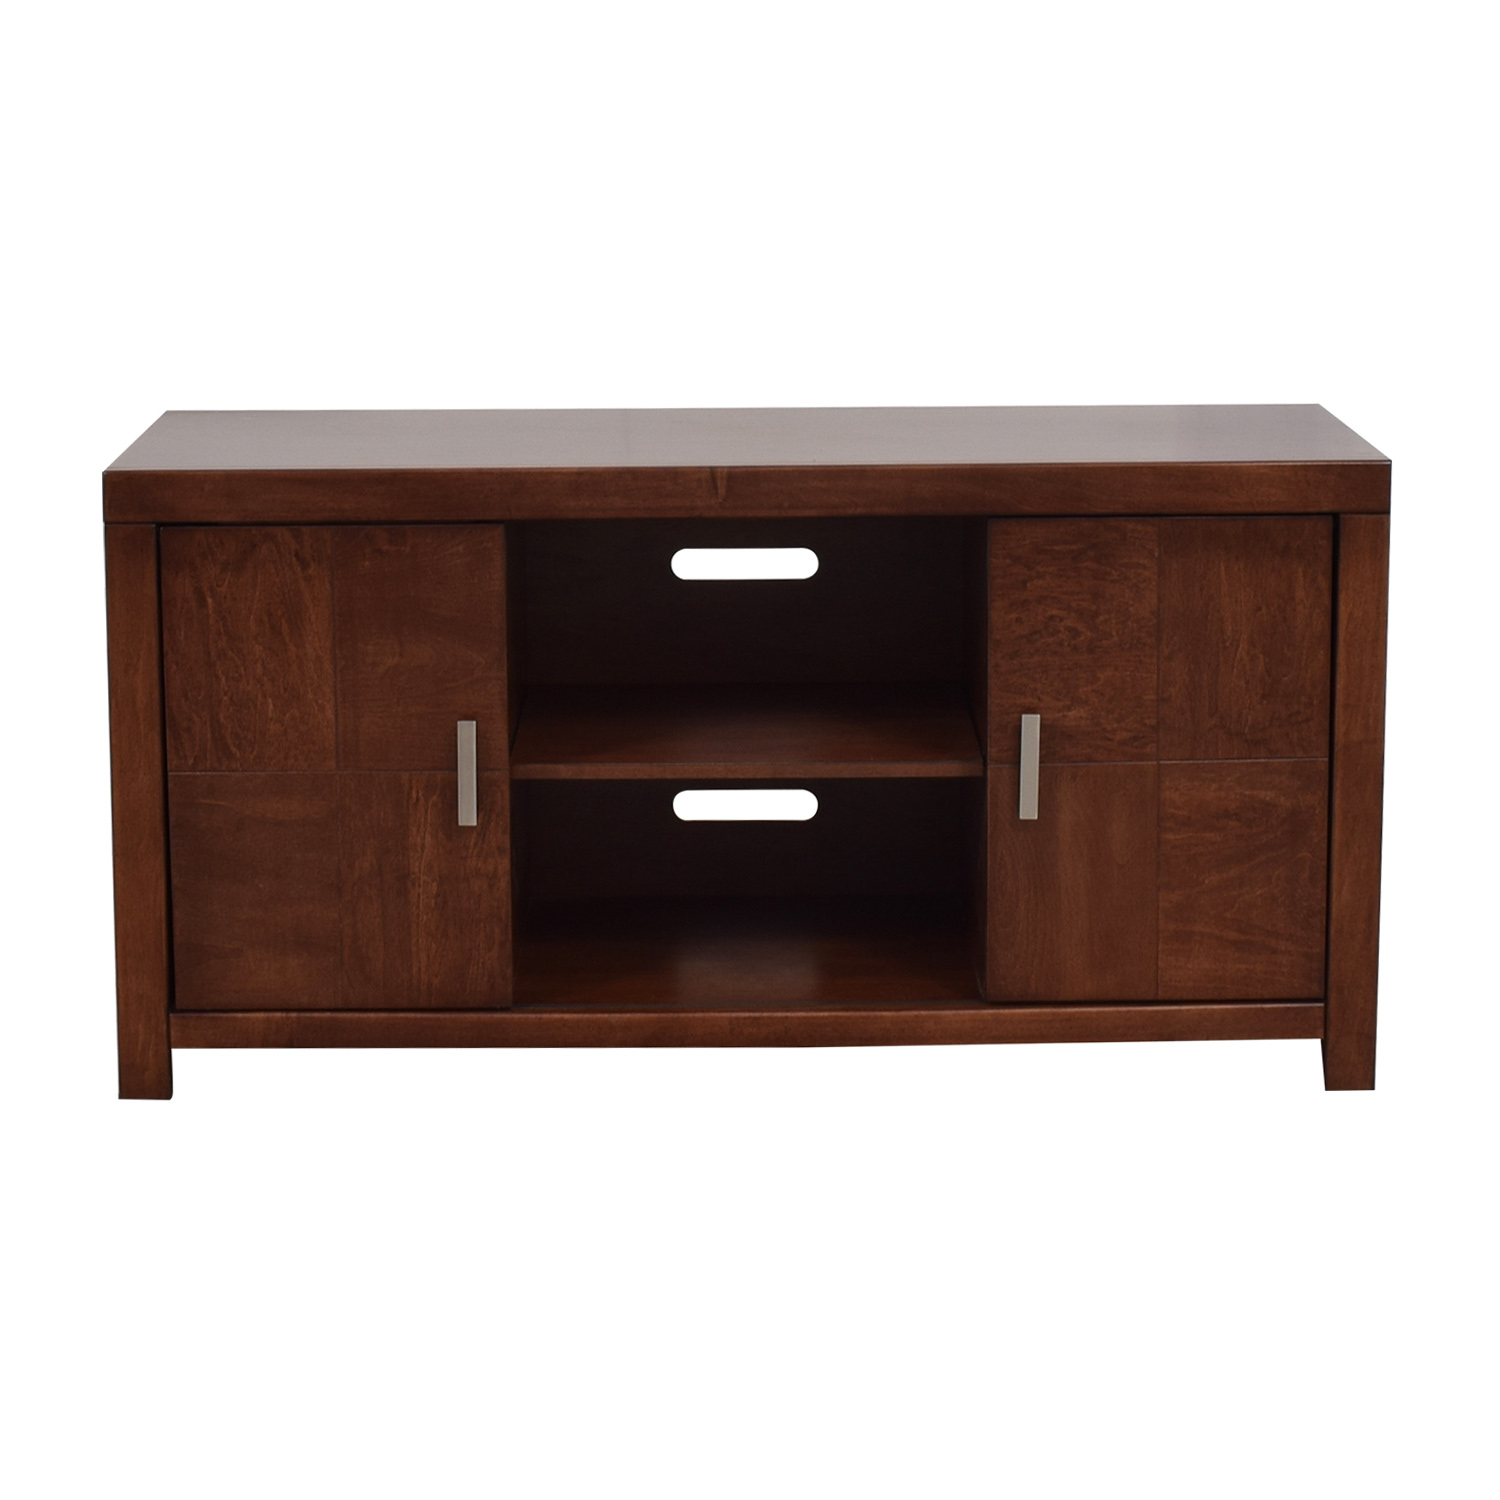 Raymour & Flanigan Raymour & Flanigan Cinnamon Maple Media Console price